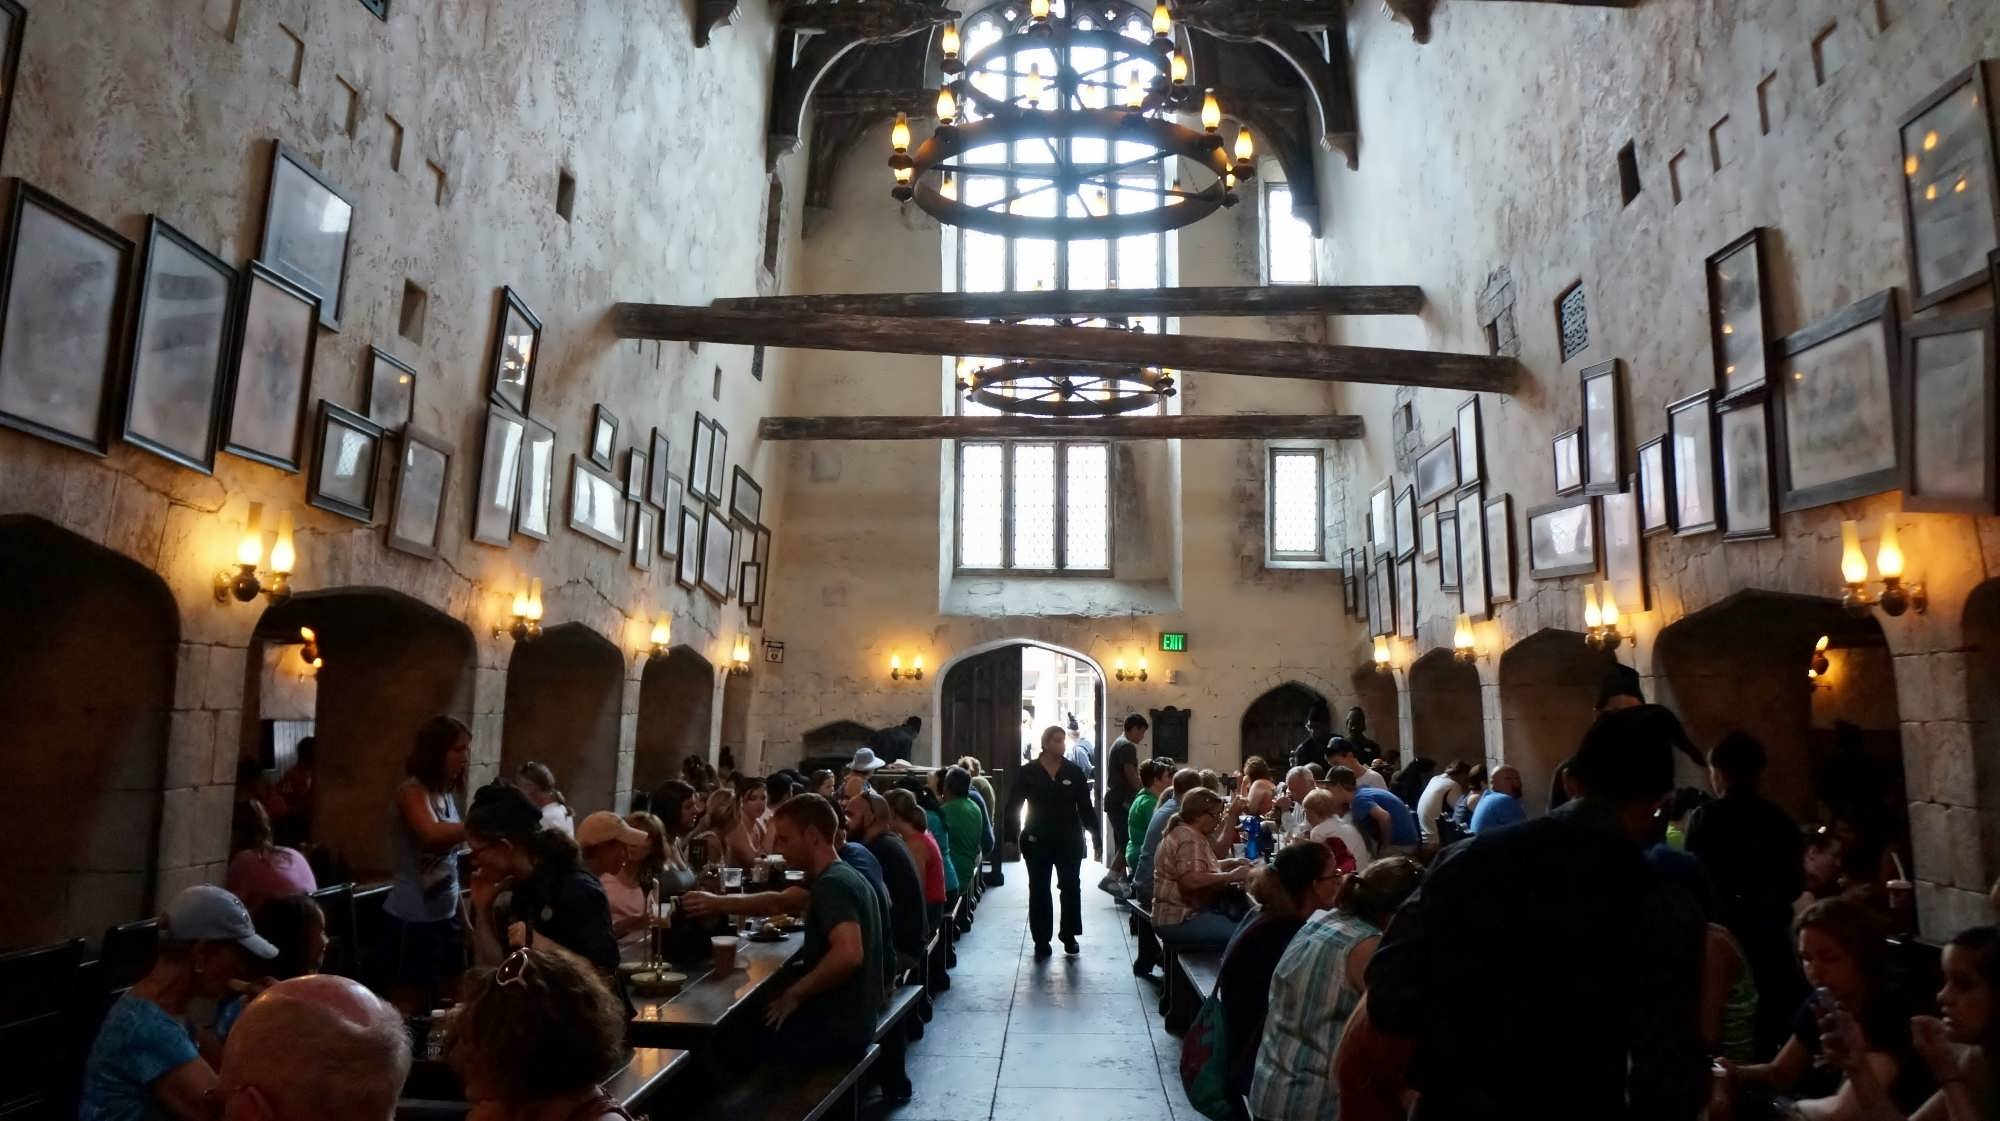 The main dining room at The Leaky Cauldron